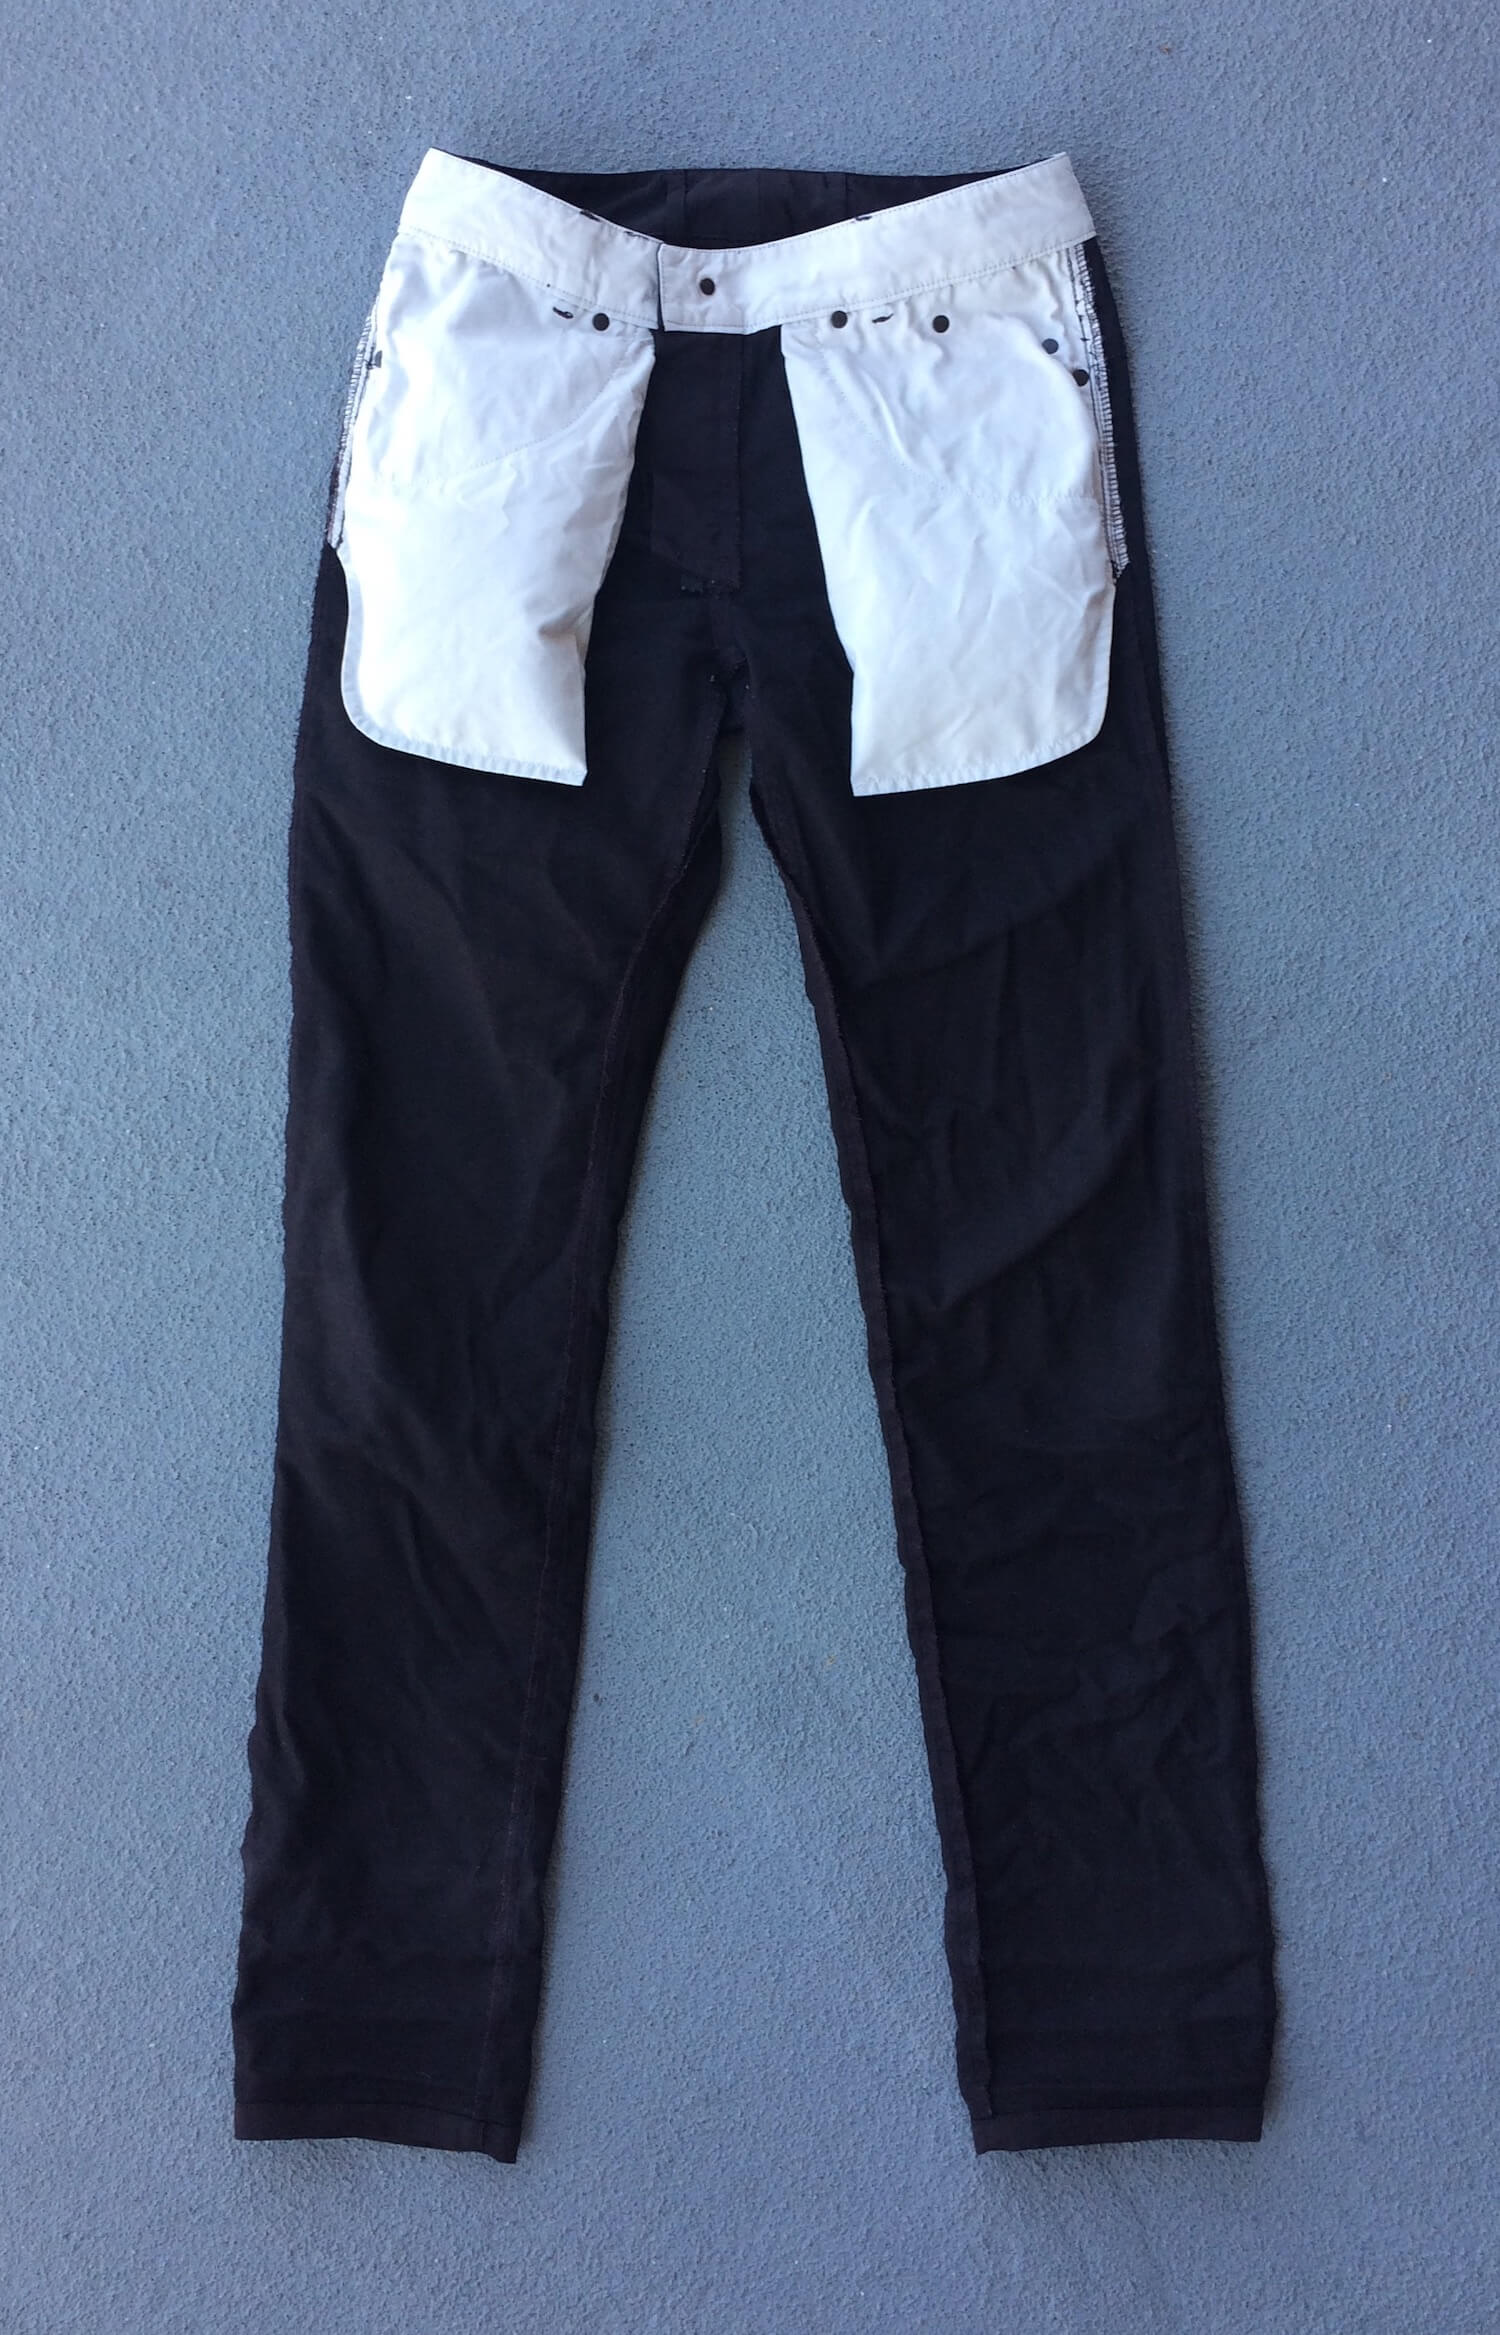 OutlierSlim Dungarees pants review